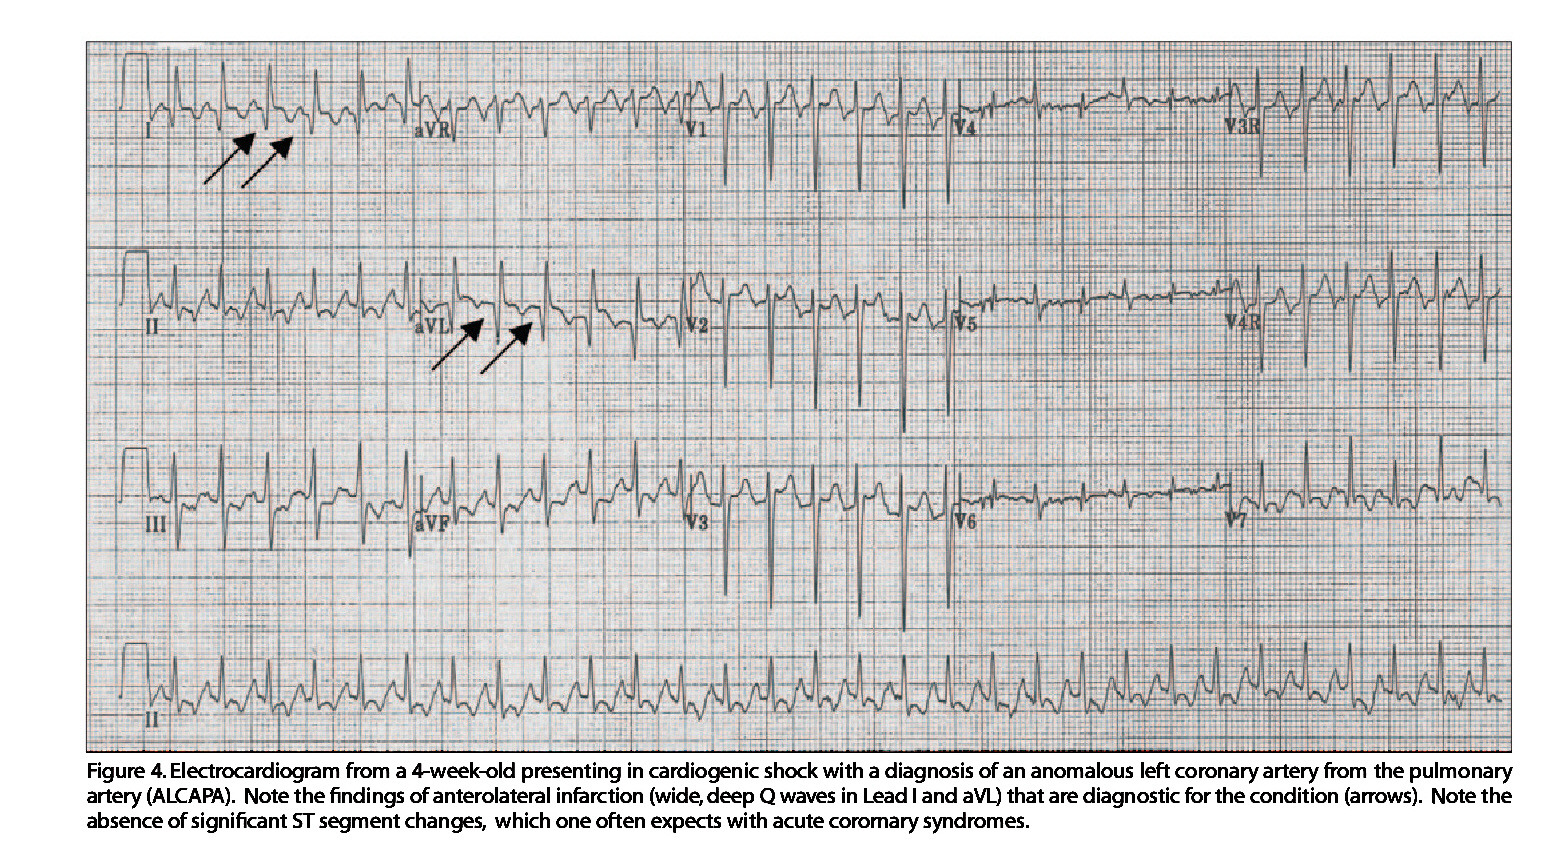 Figure 4. Electrocardiogram from a 4-week-old presenting in cardiogenic shock with a diagnosis of an anomalous left coronary artery from the pulmonary artery (ALCAPA). Note the findings of anterolateral infarction (wide, deep Q waves in Lead I and aVL) that are diagnostic for the condition (arrows). Note the absence of significant ST segment changes, which one often expects with acute coromary syndromes.